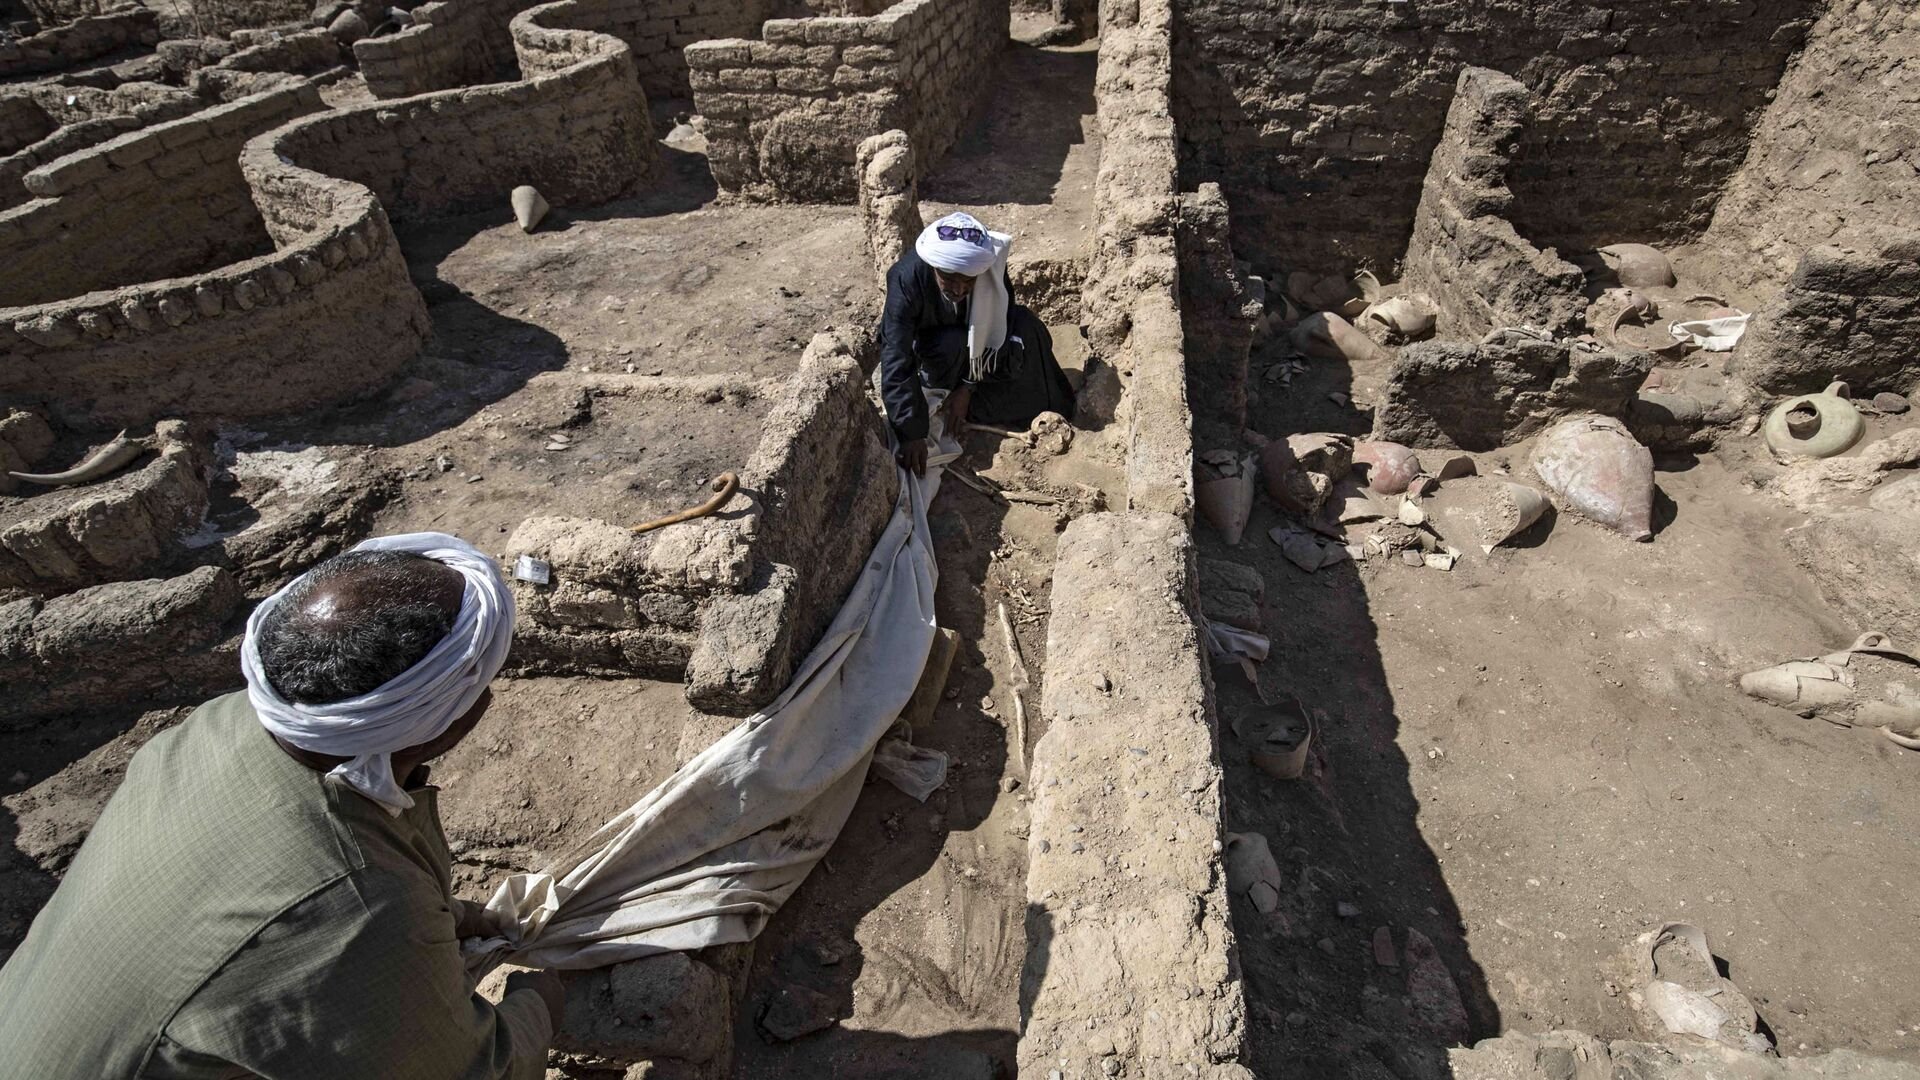 A picture taken on April 10, 2021, shows workers at the archaeological site of a 3000 year old city, dubbed The Rise of Aten, dating to the reign of Amenhotep III, uncovered by the Egyptian mission near Luxor. - Archaeologists have uncovered the remains of an ancient city in the desert outside Luxor that they say is the largest ever found in Egypt and dates back to a golden age of the pharaohs 3,000 years ago. Famed Egyptologist Zahi Hawass announced the discovery of the lost golden city, saying the site was uncovered near Luxor, home of the legendary Valley of the Kings.  - Sputnik International, 1920, 25.09.2021